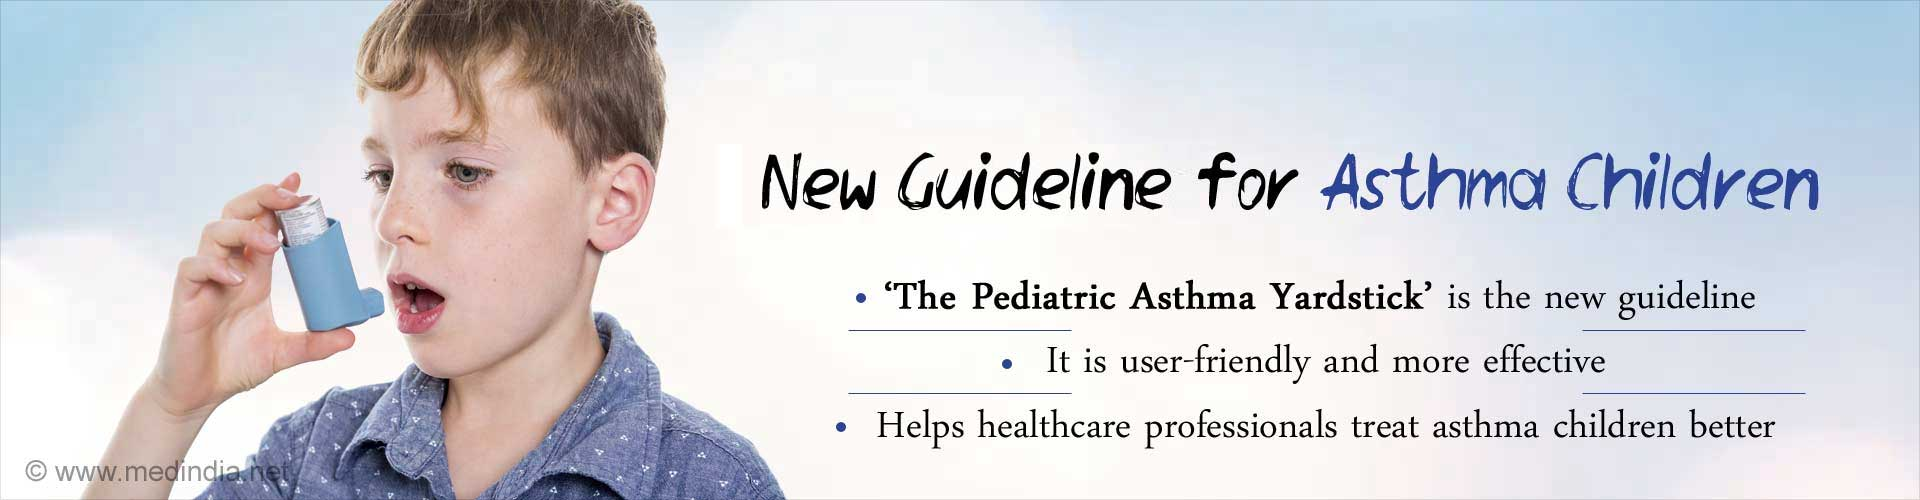 Pediatric Asthma Yardstick - A New Guideline for Doctors